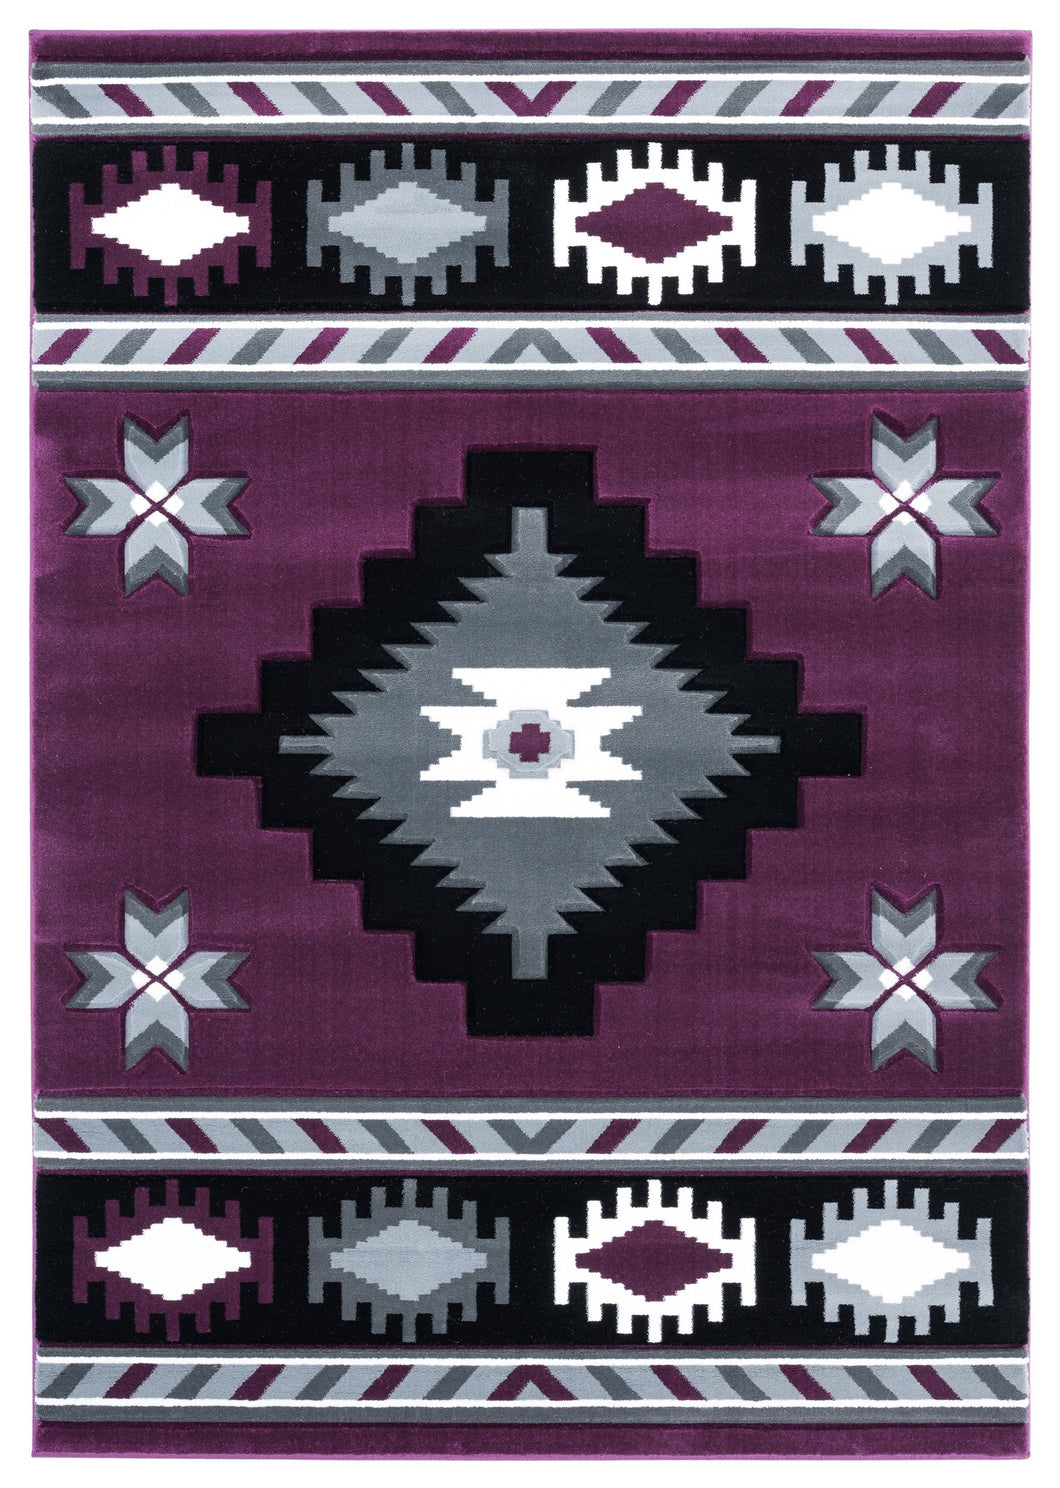 United Weavers  Bristol  Caliente  2050 10482  Plum  Area Rug